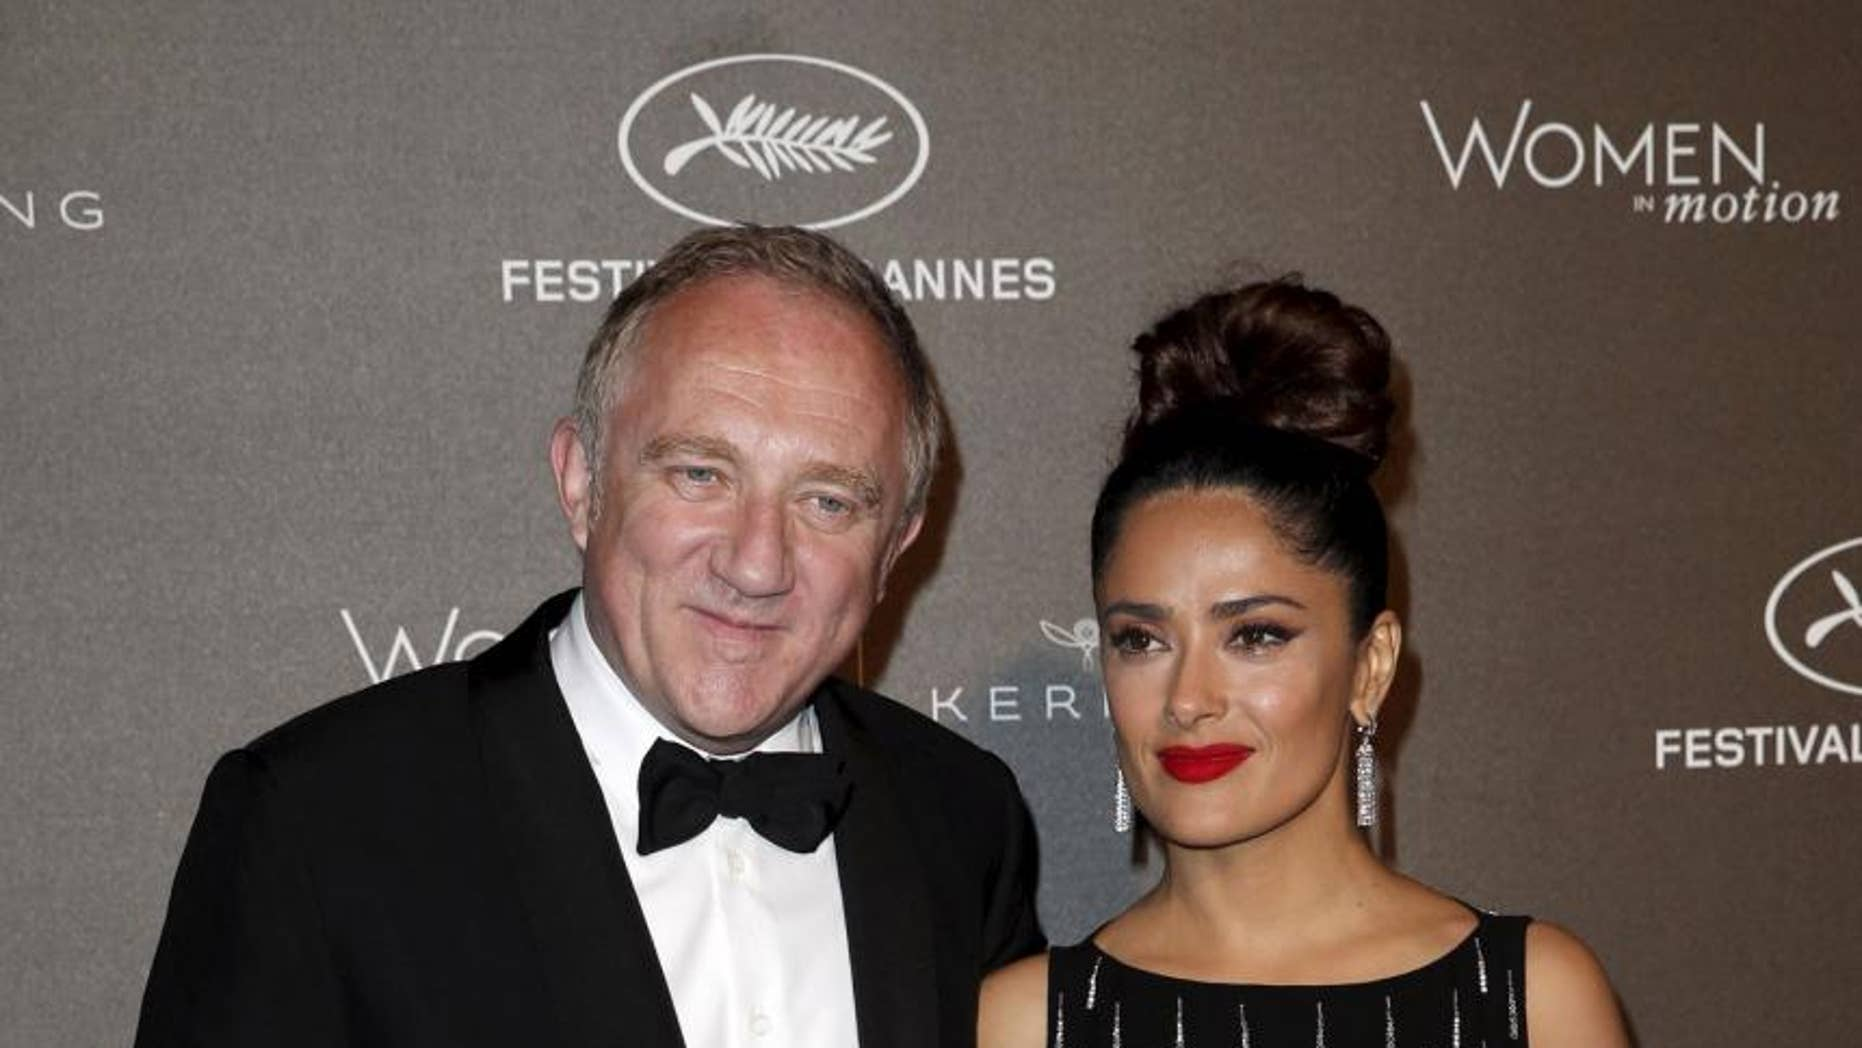 French billionaire François-Henri Pinault, who is married to Salma Hayek, pledged $ 113 million for reconstruction efforts following a fire that ruled in the Notre Dame Cathedral in Paris, causing major cushions and collapses in the structure's main spire.